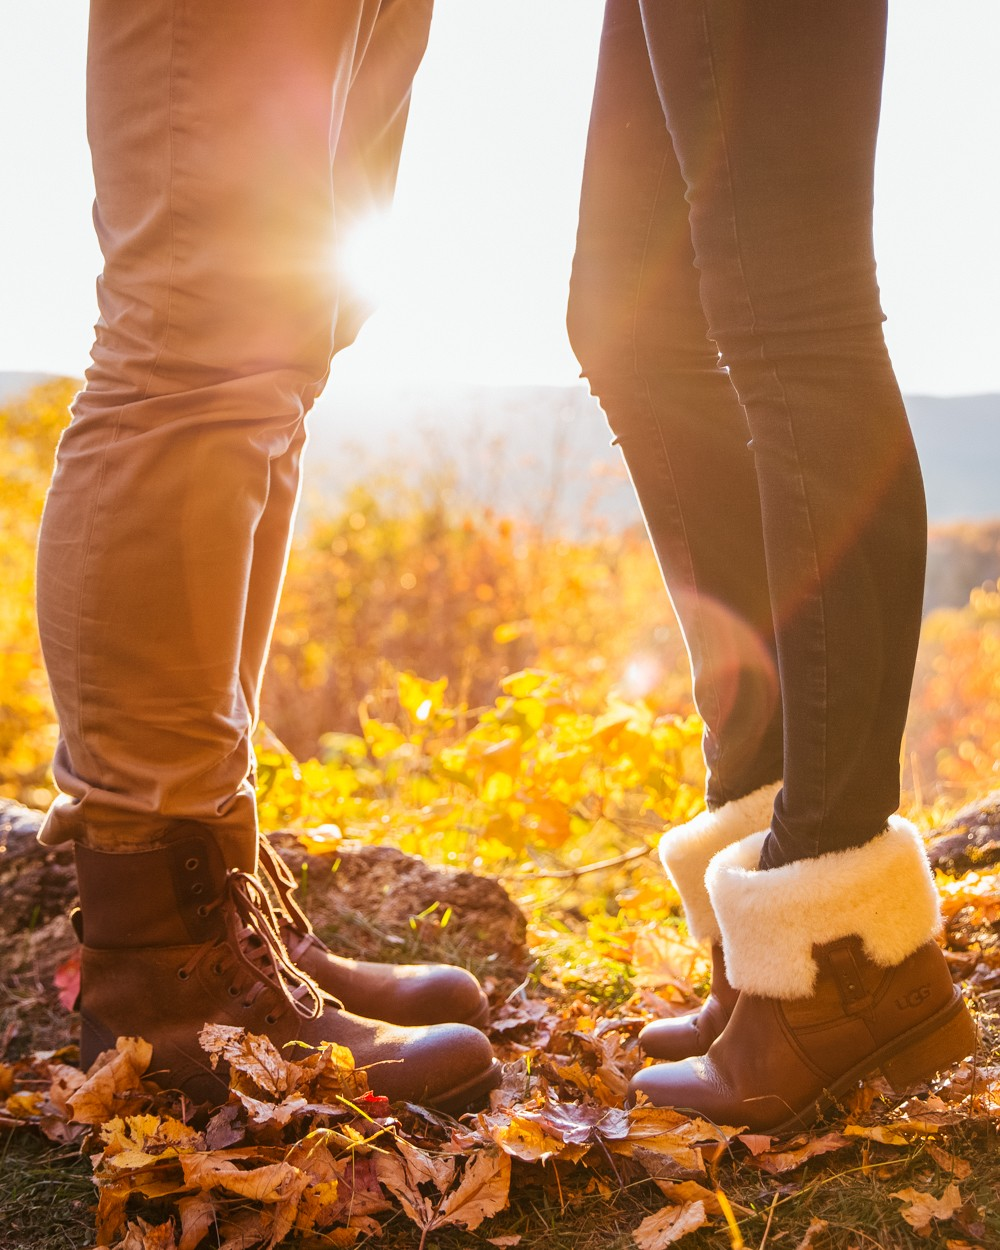 His n Hers UGG boots - snUGG!